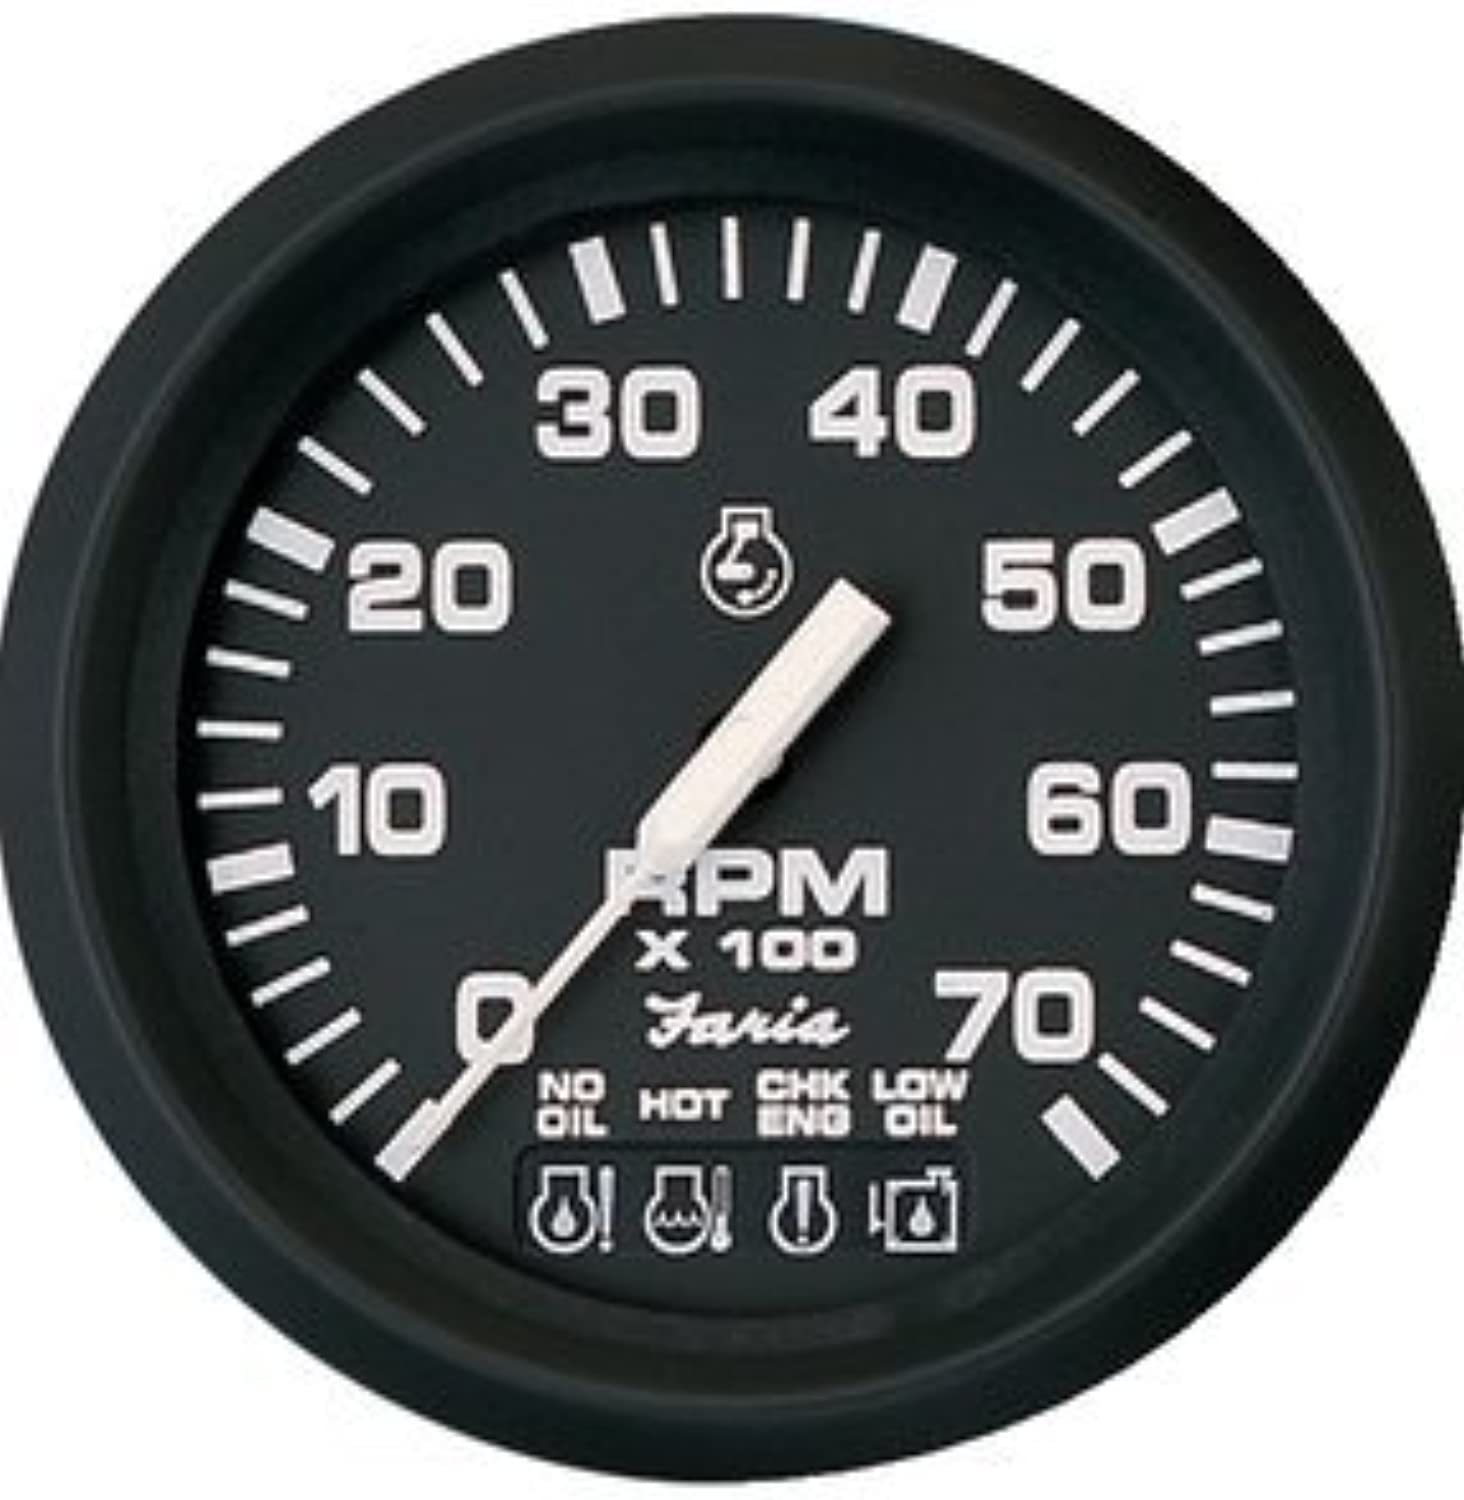 Faria PerimeterLighted Euro 7,000 RPM OMC System Check Tach FAR32850 by FARIA INSTRUMENTS